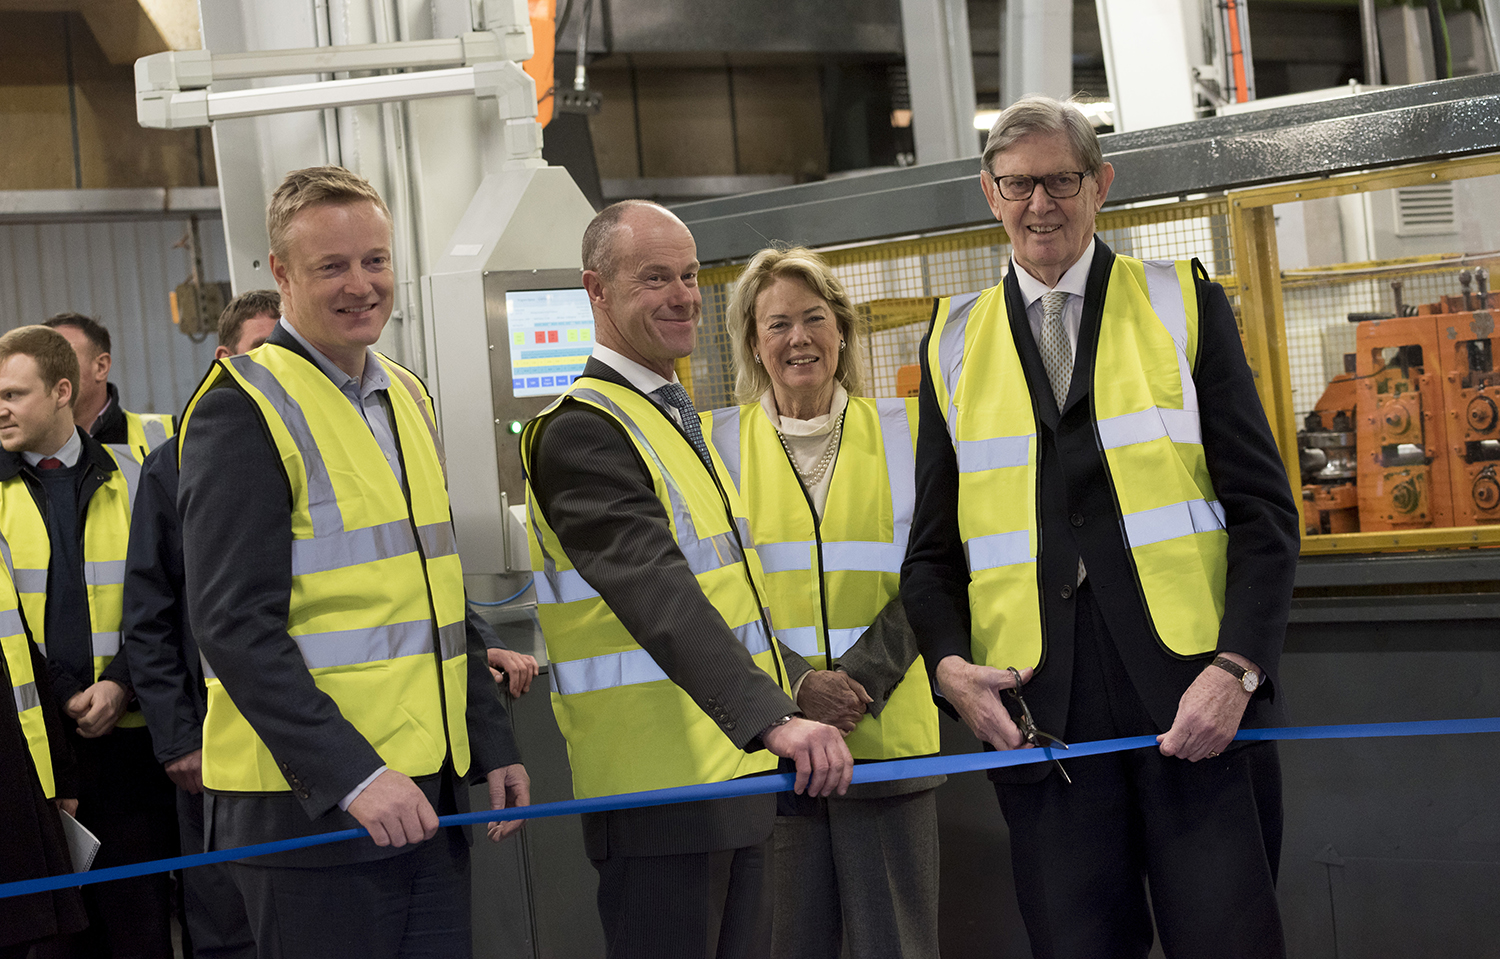 Sir Bill Cash MP opens £1million investment at Klarius